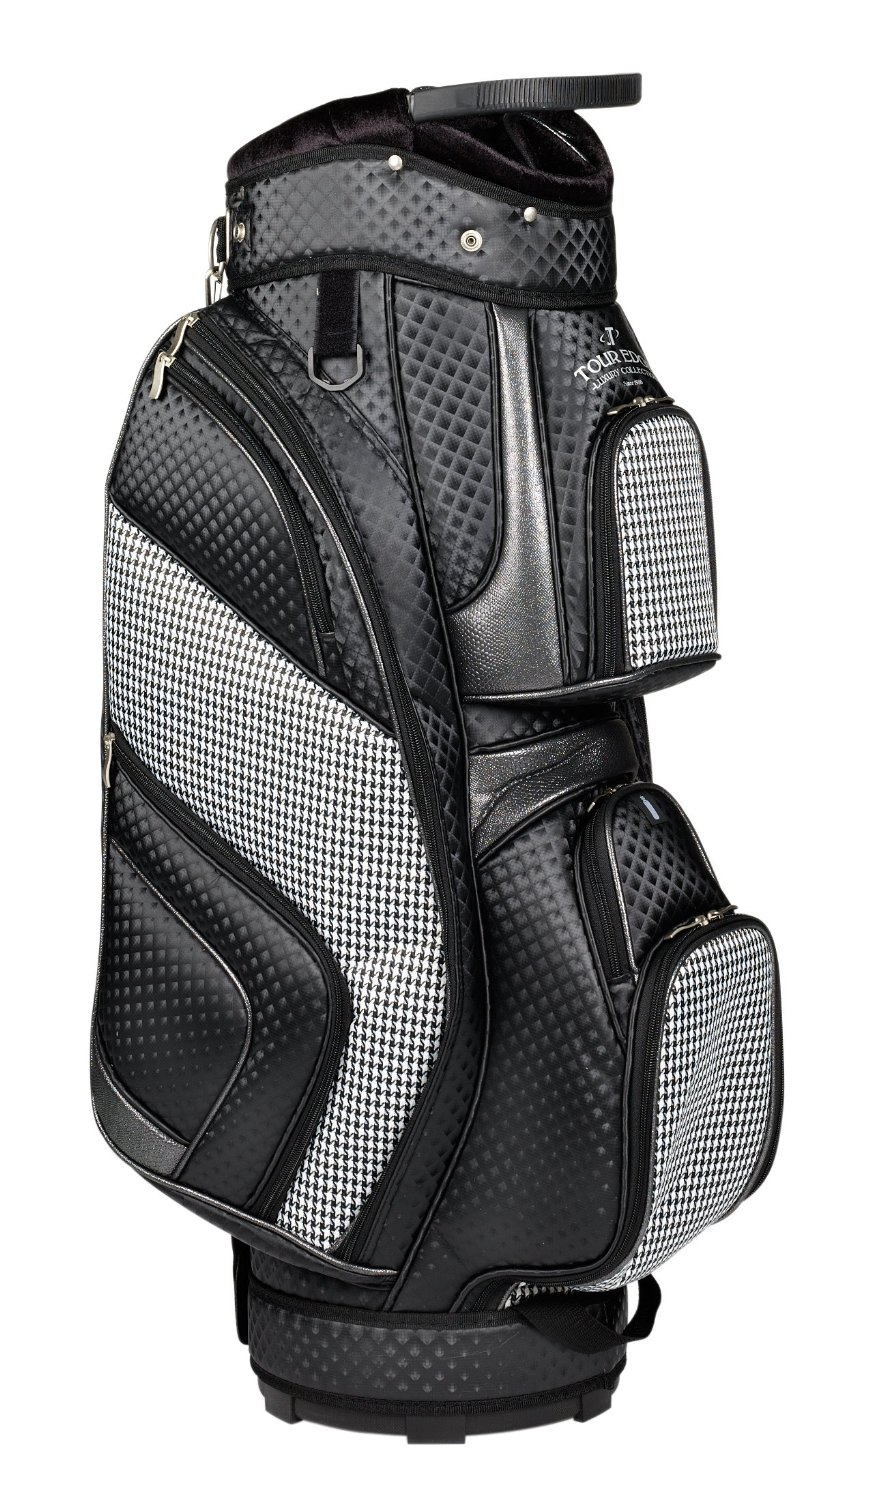 Tour Edge Womens Luxury Golf Cart Bags